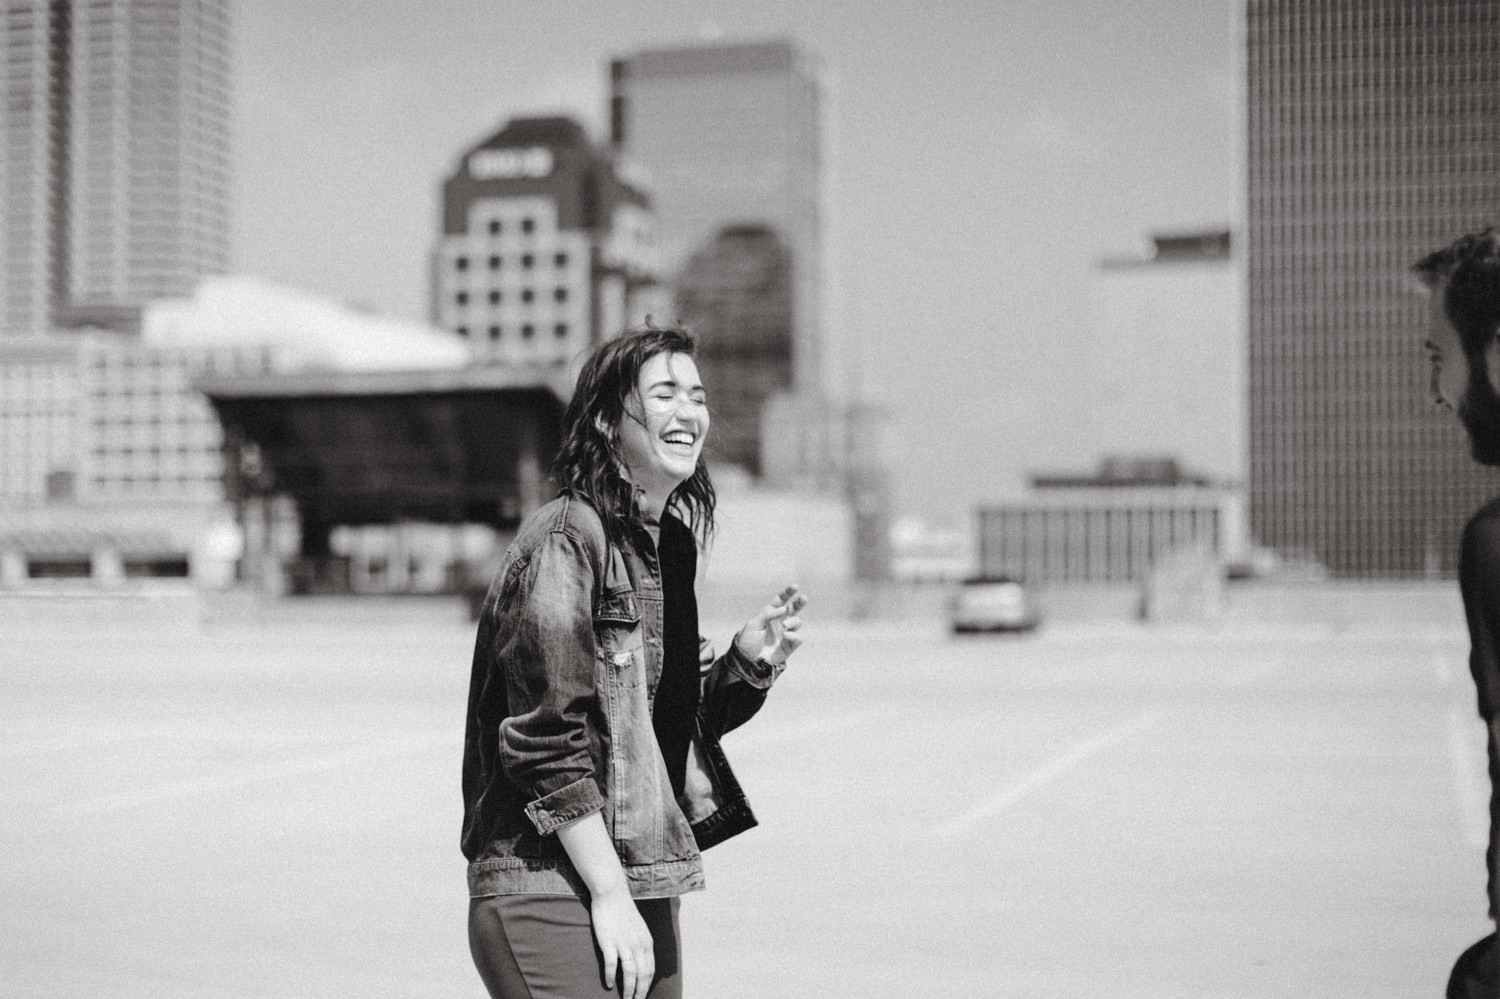 downtown-indianapolis-engagement-session-rooftop-indianapolis-engagement-photographer-kelly-marcelo-photography033.JPG